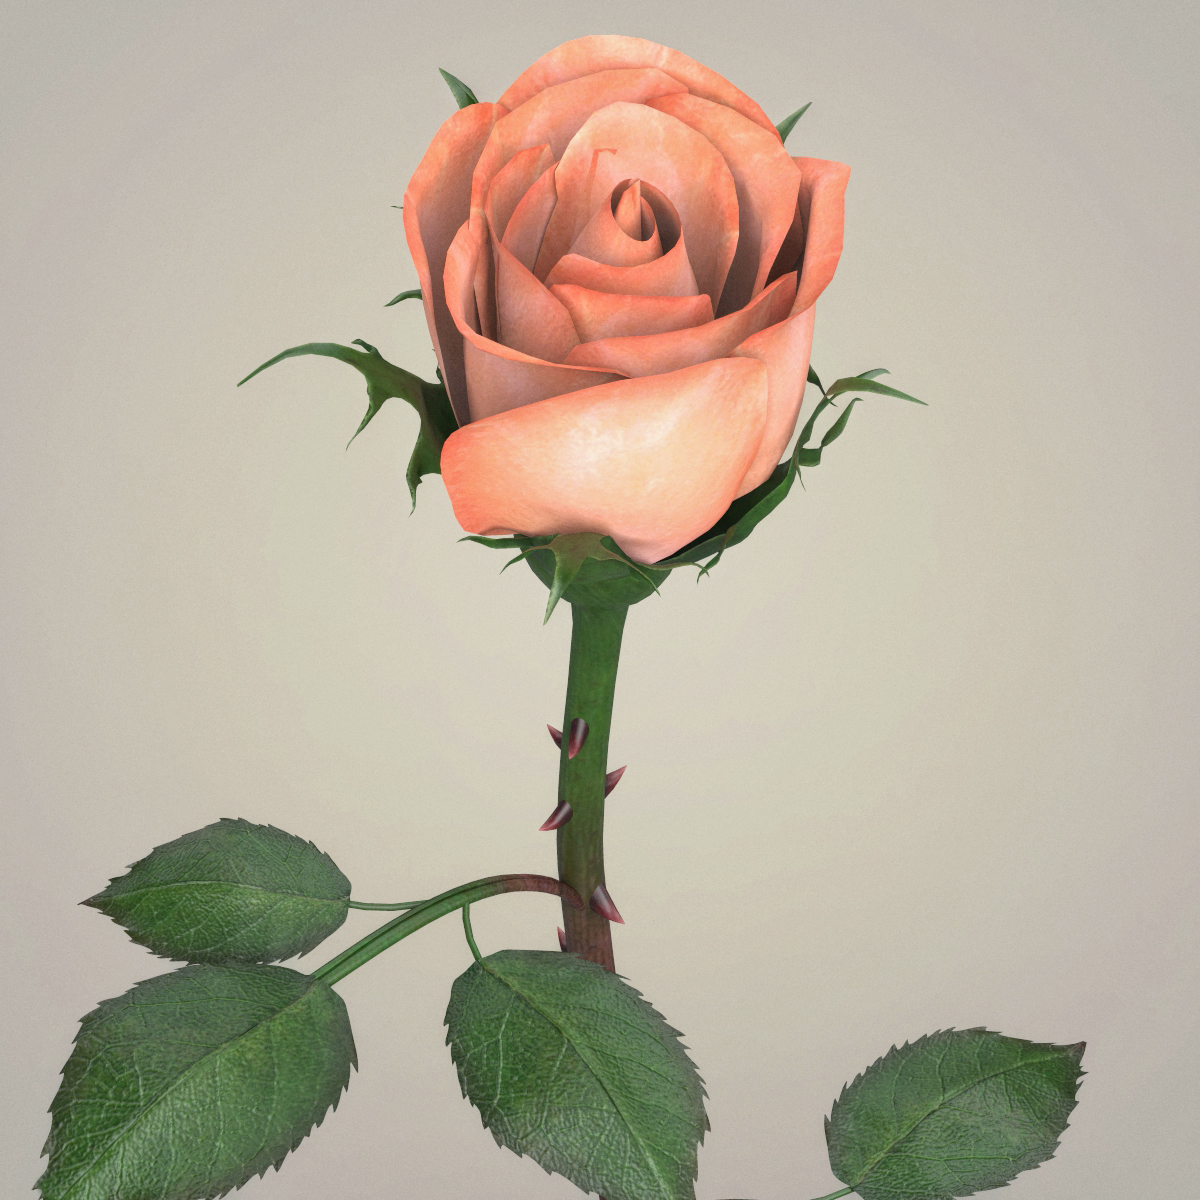 rose flower collection 3d model max fbx c4d ma mb obj 252764